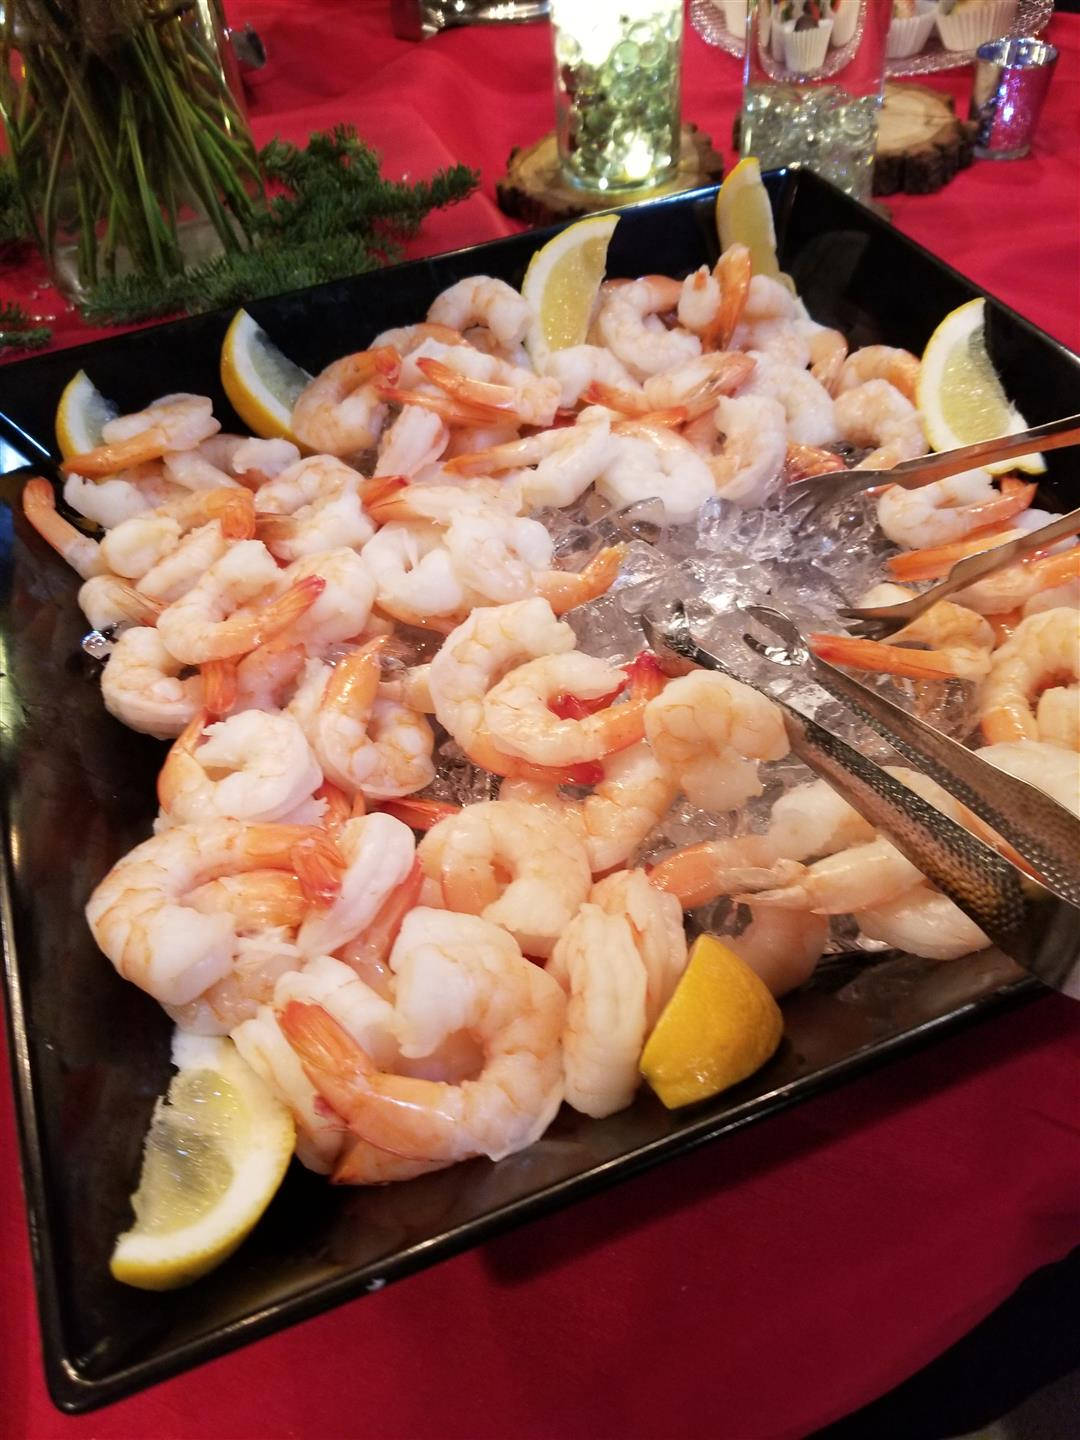 Assortment of Shrimp in a tray with sliced lemons with two tongs